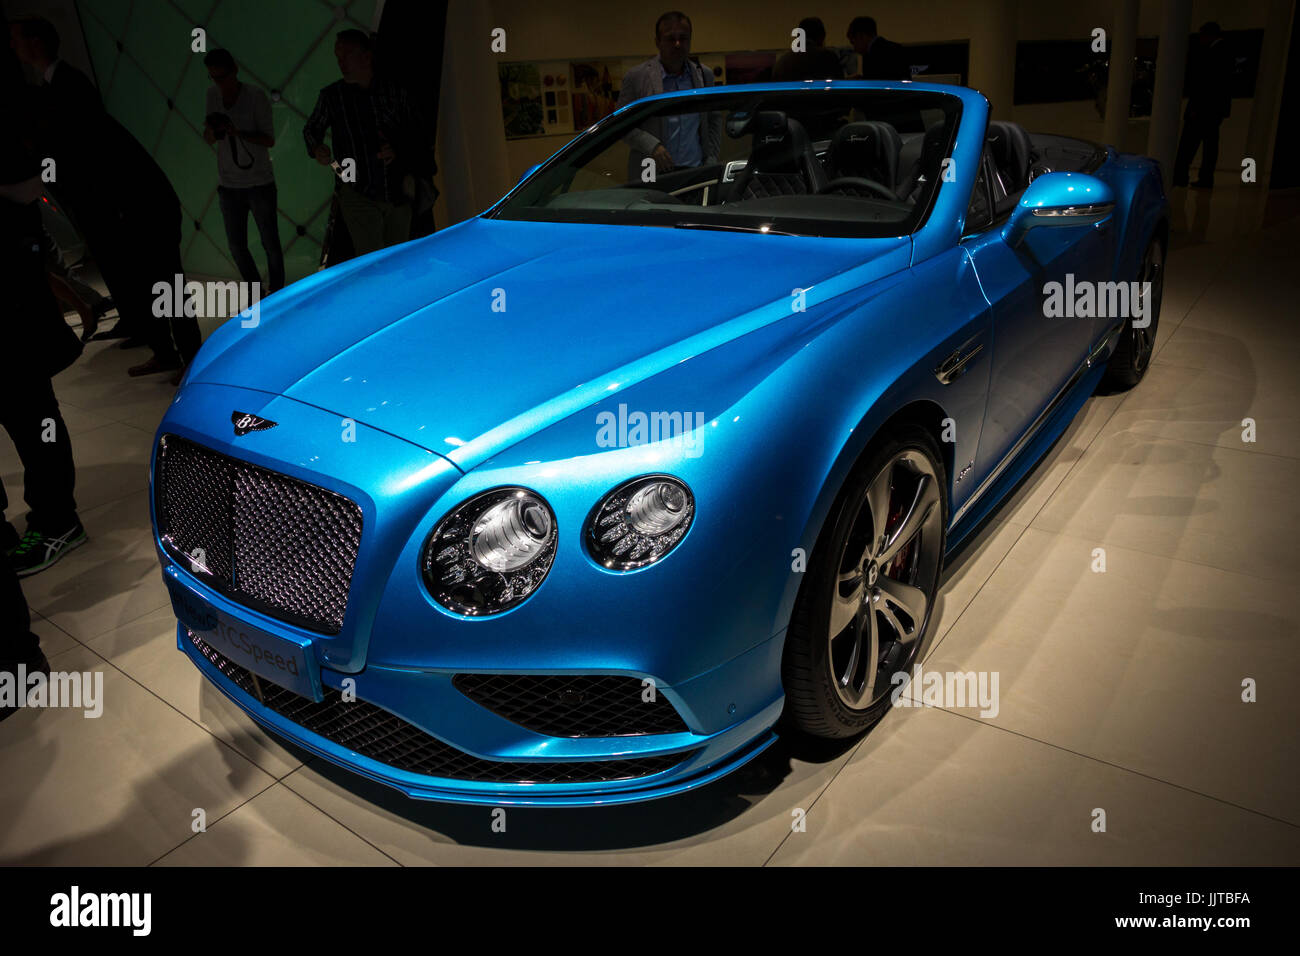 Blue Bentley Convertible High Resolution Stock Photography And Images Alamy